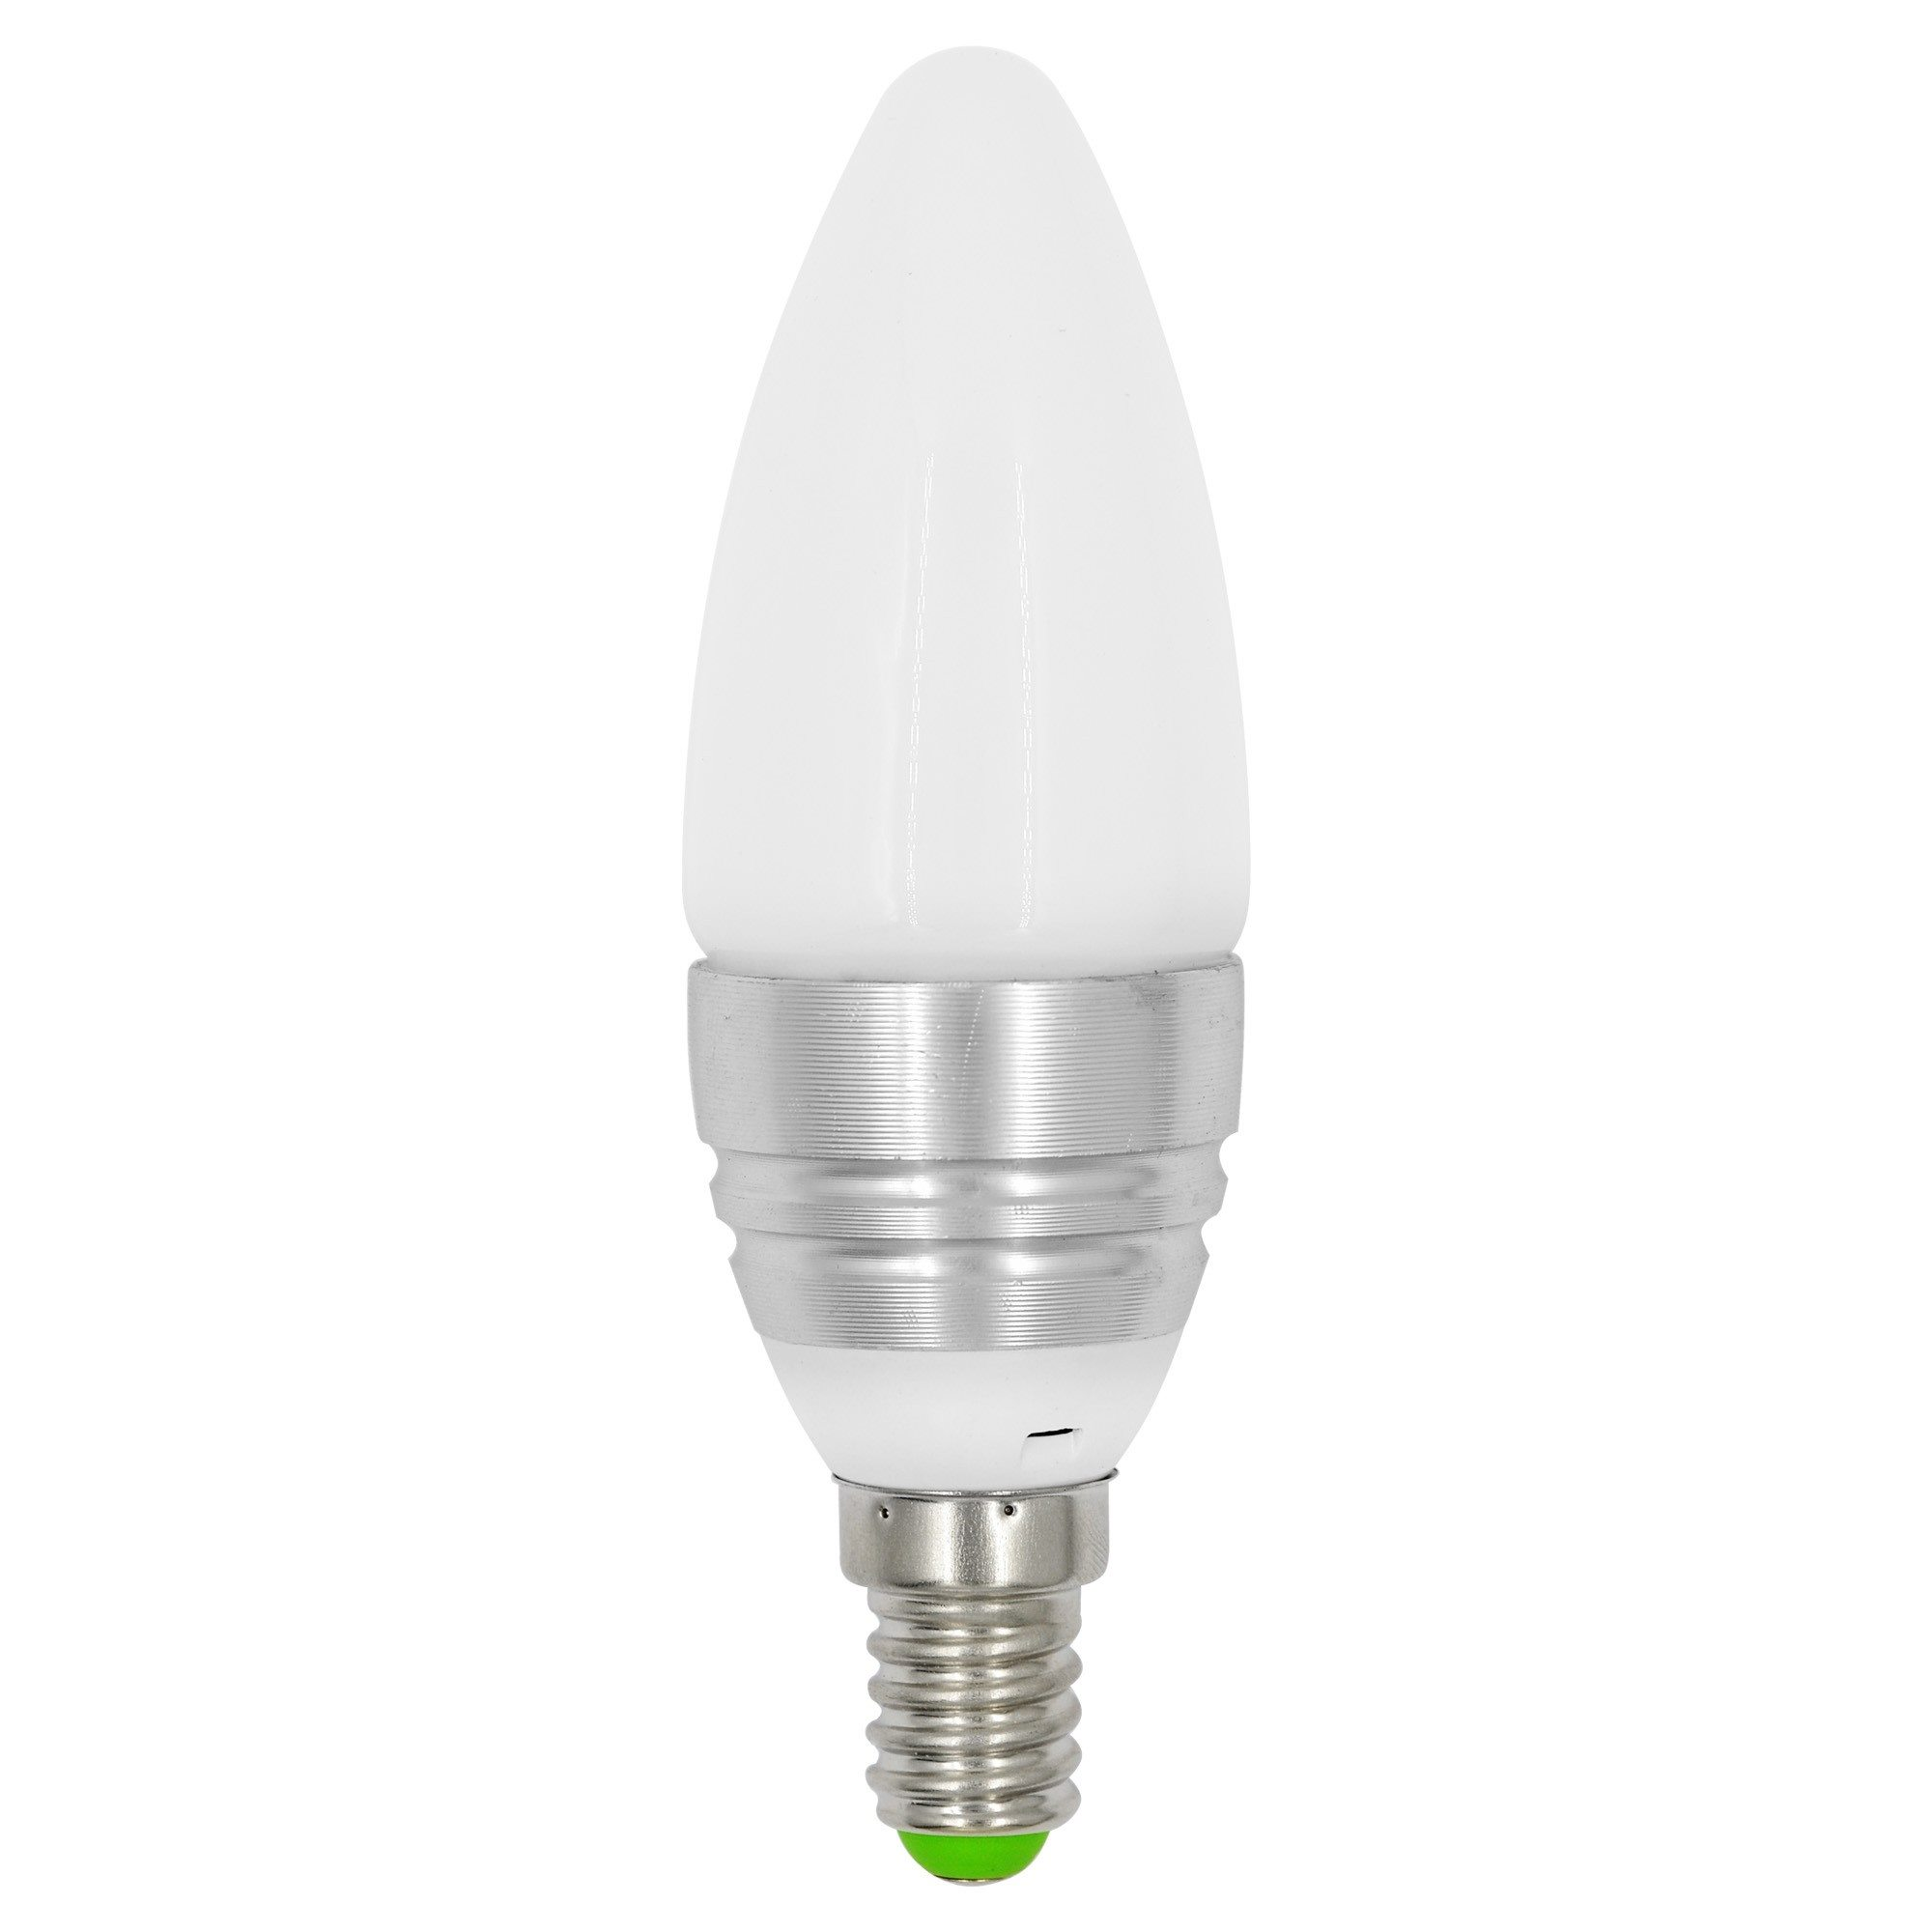 Mengsled Mengs E14 3w Led Candle Light Smd Leds Led Lamp Bulb In Warm Cool White Energy